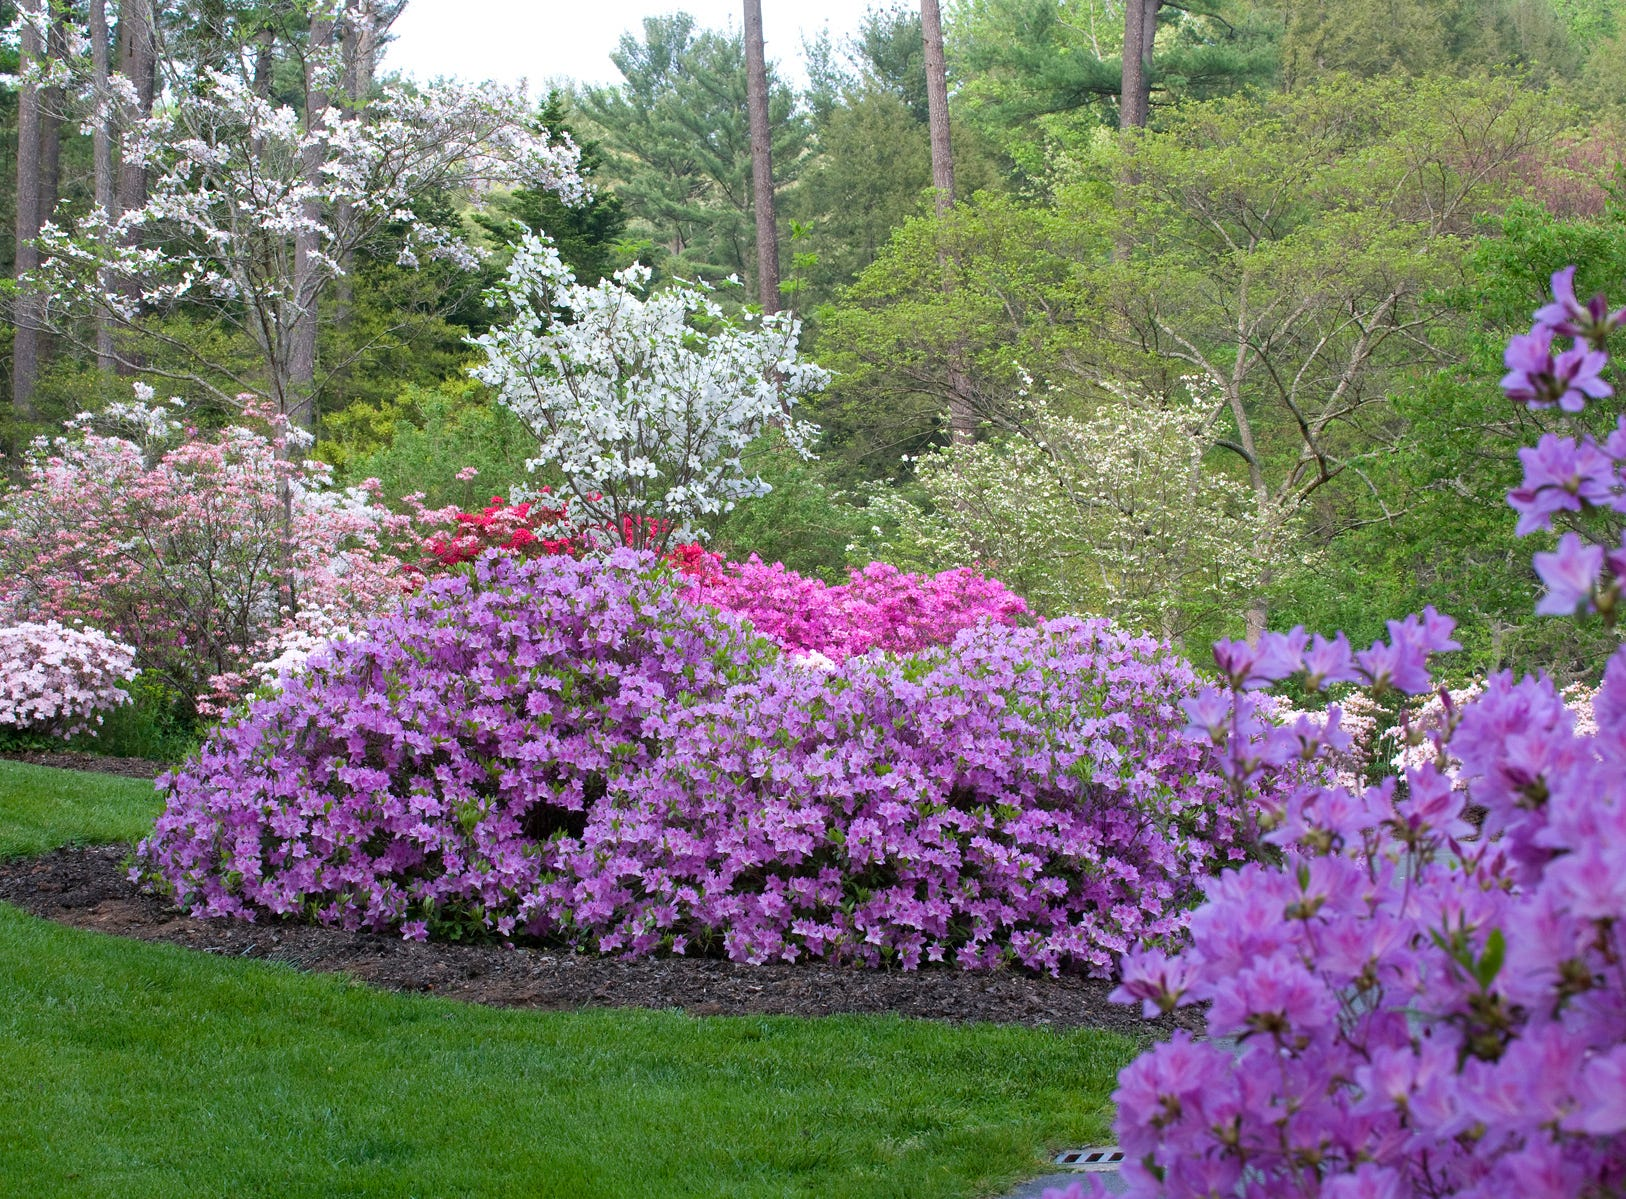 The azalea garden in full bloom at Biltmore is a riot of color.